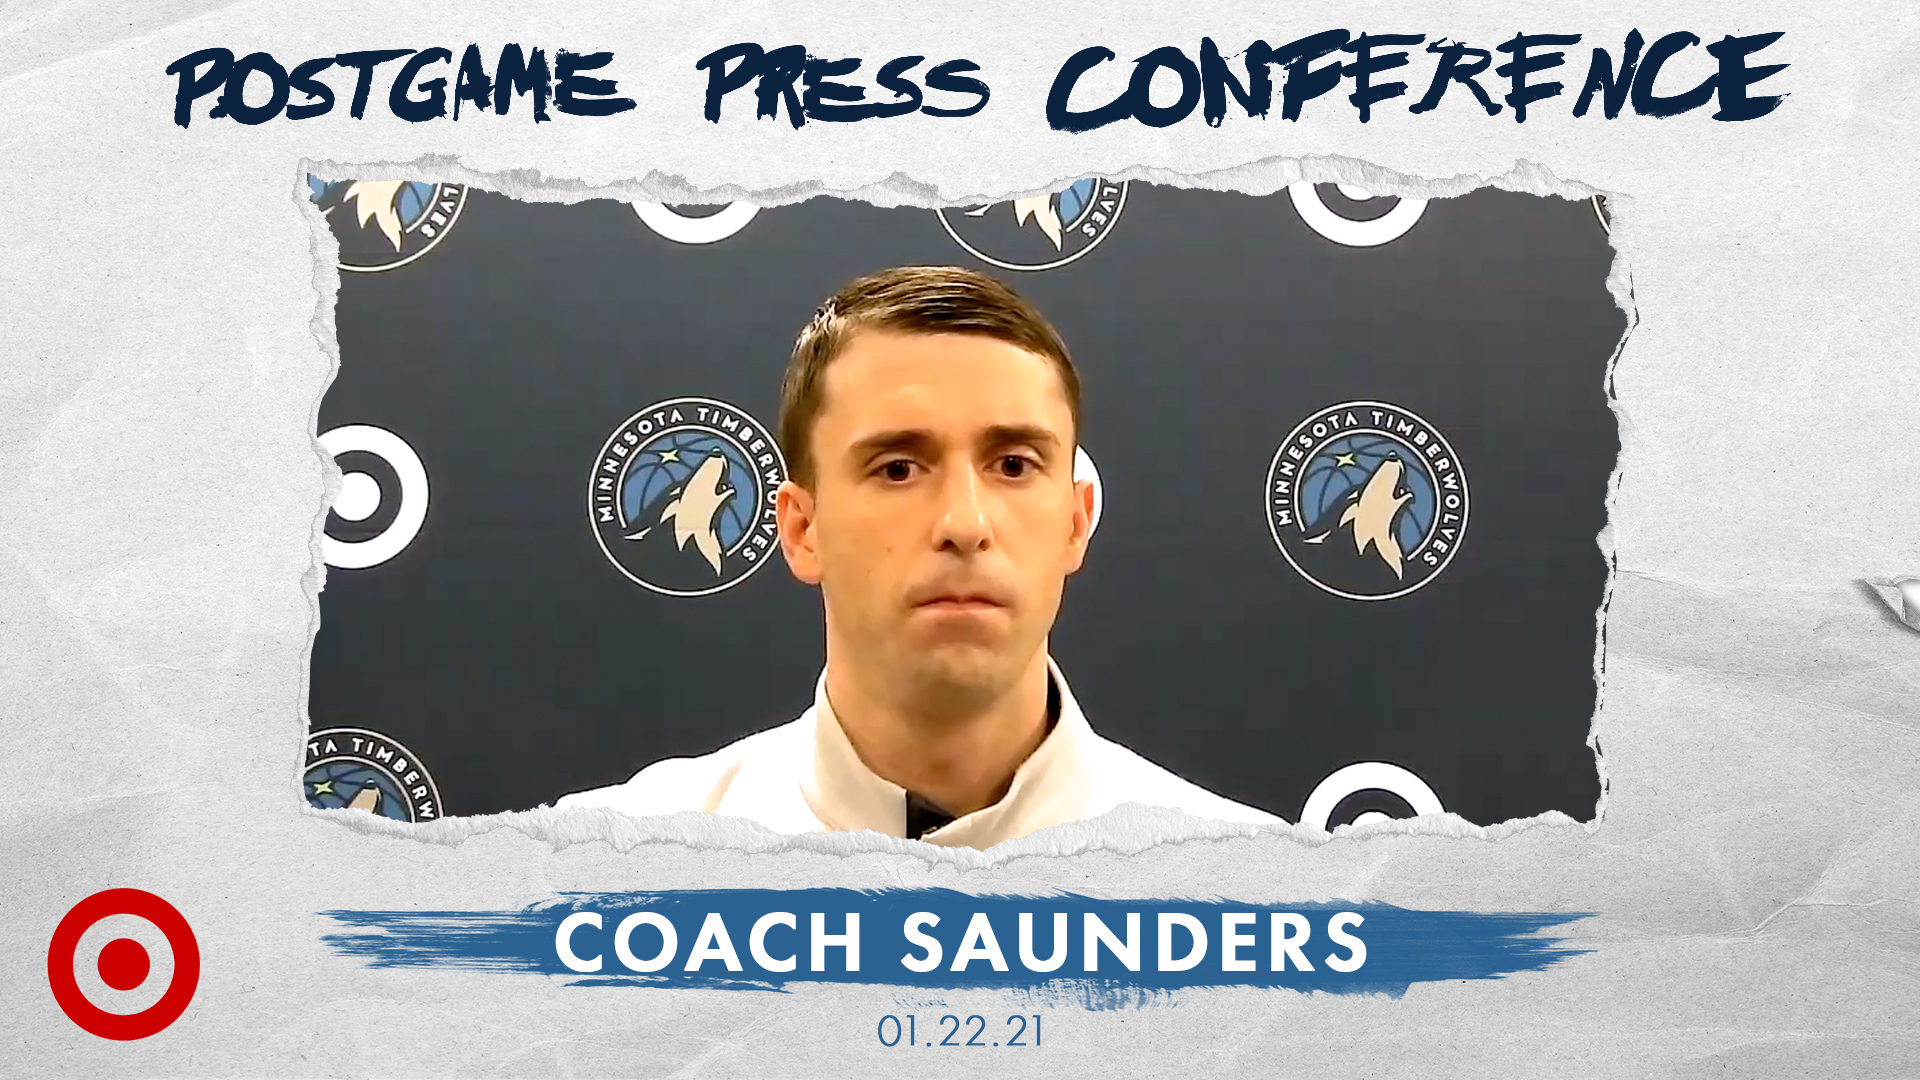 Coach Saunders Postgame Press Conference - January 22, 2021